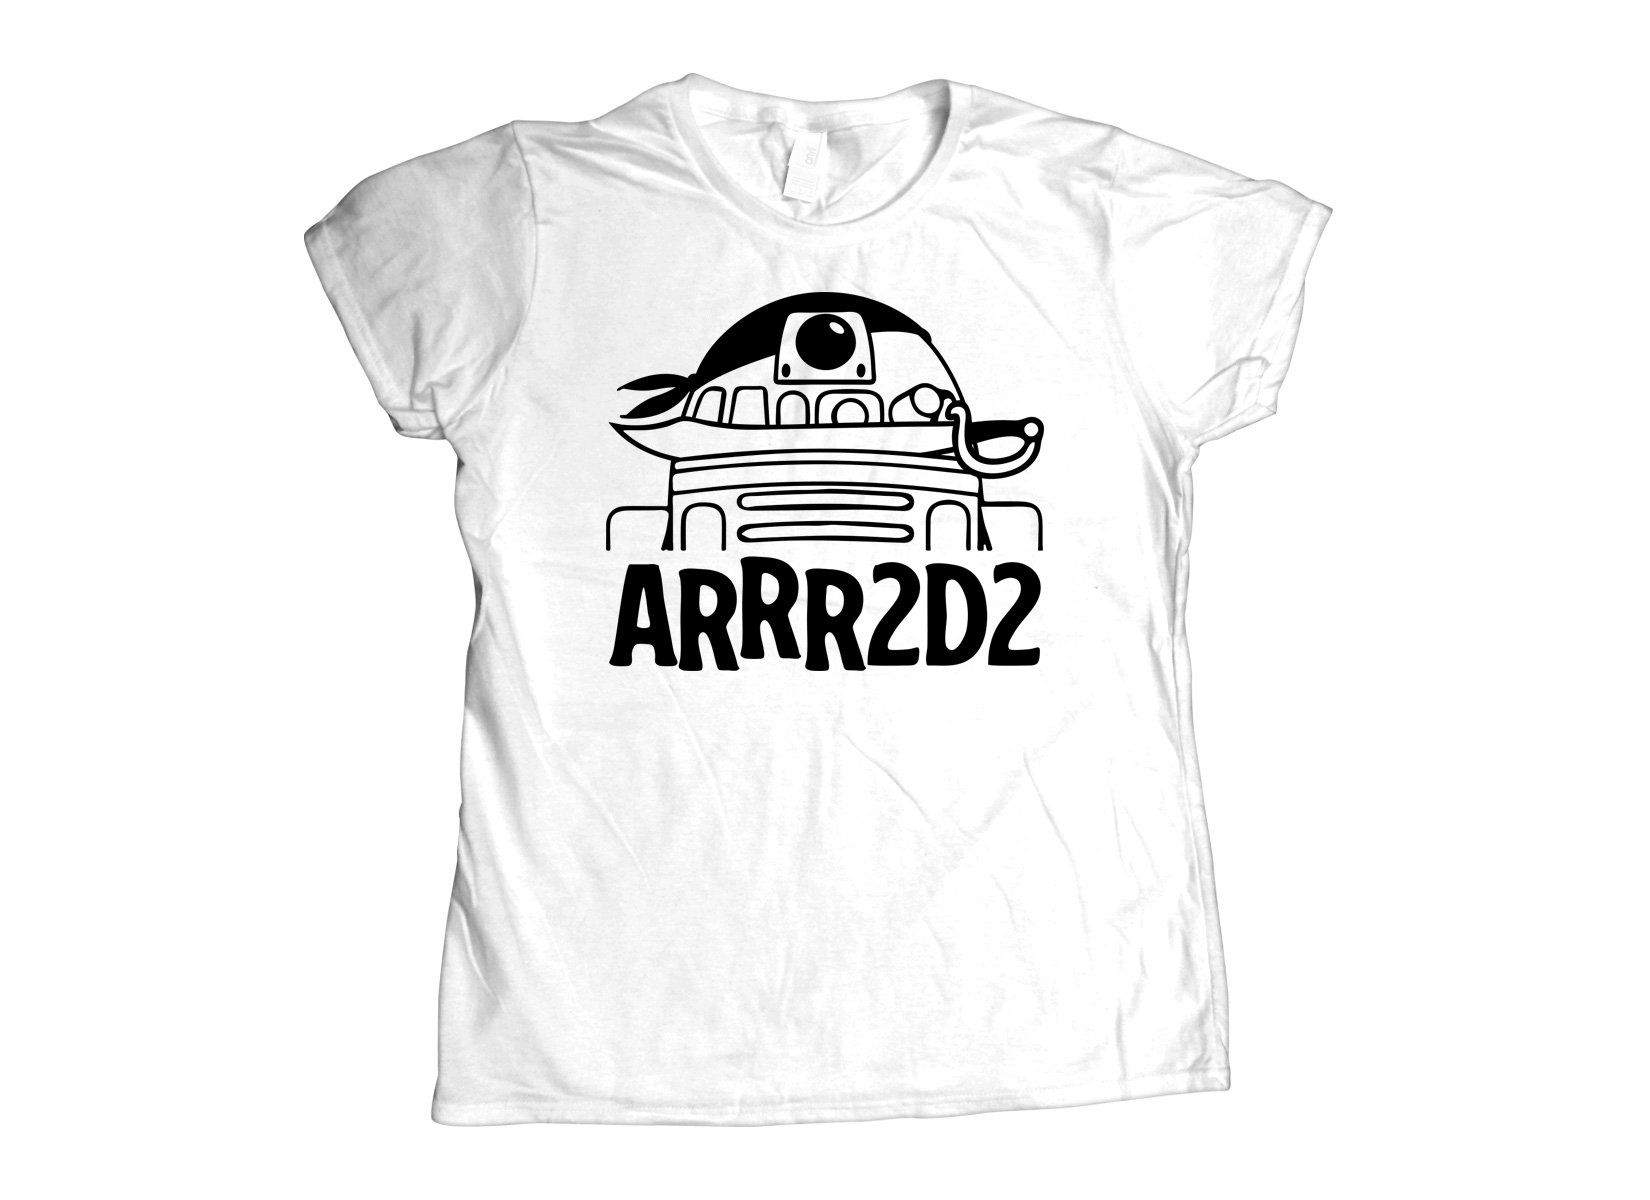 ARRR2D2 on Womens T-Shirt